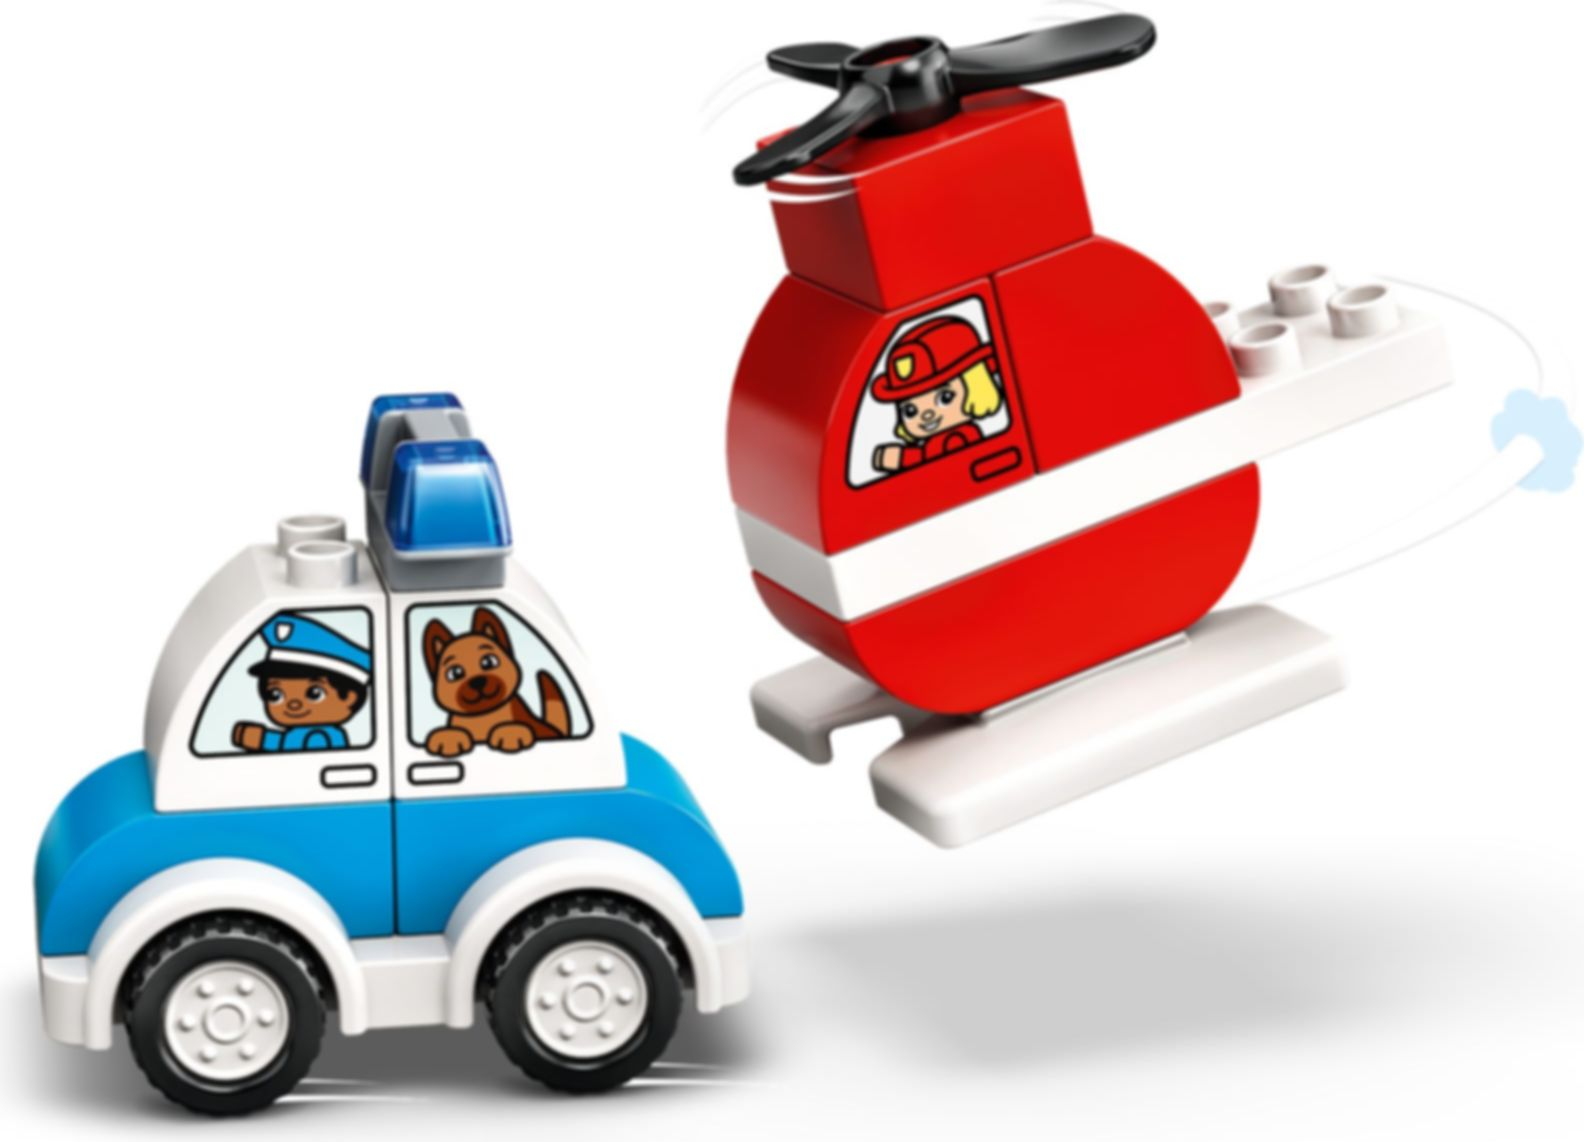 Fire Helicopter & Police Car components